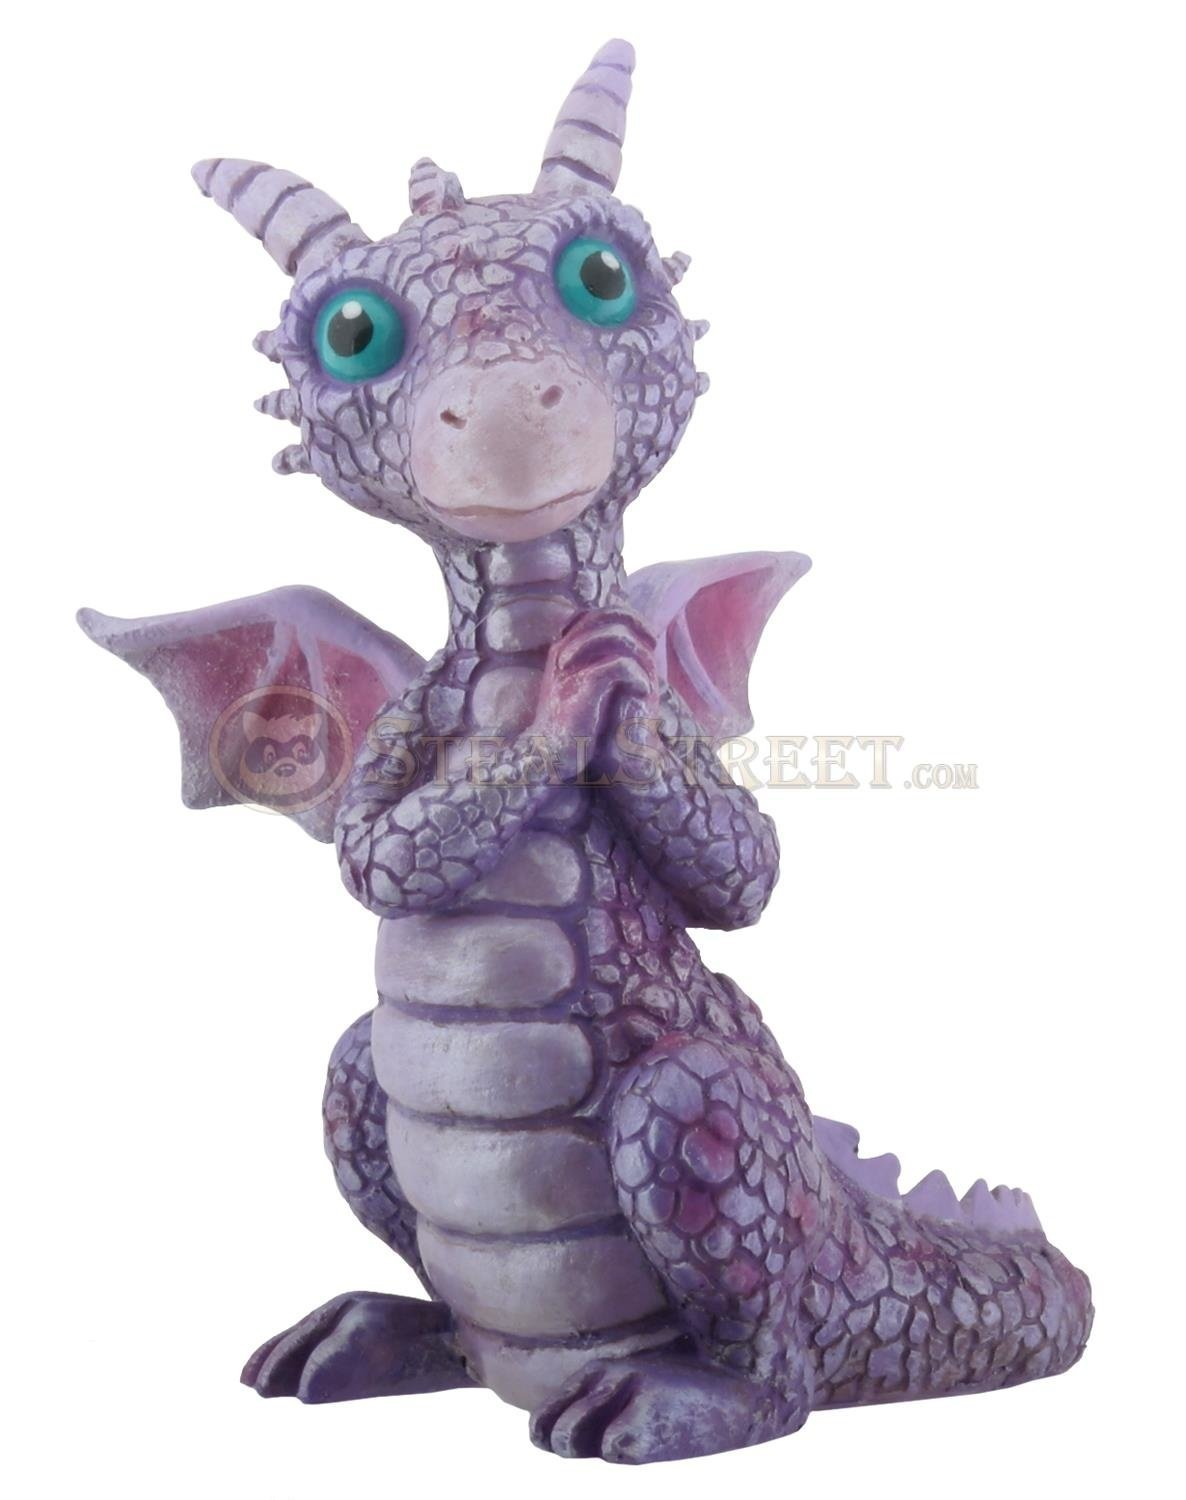 YTC 3.75 Inch Cold Cast Resin Purple and Pink Baby Dragon Figurine